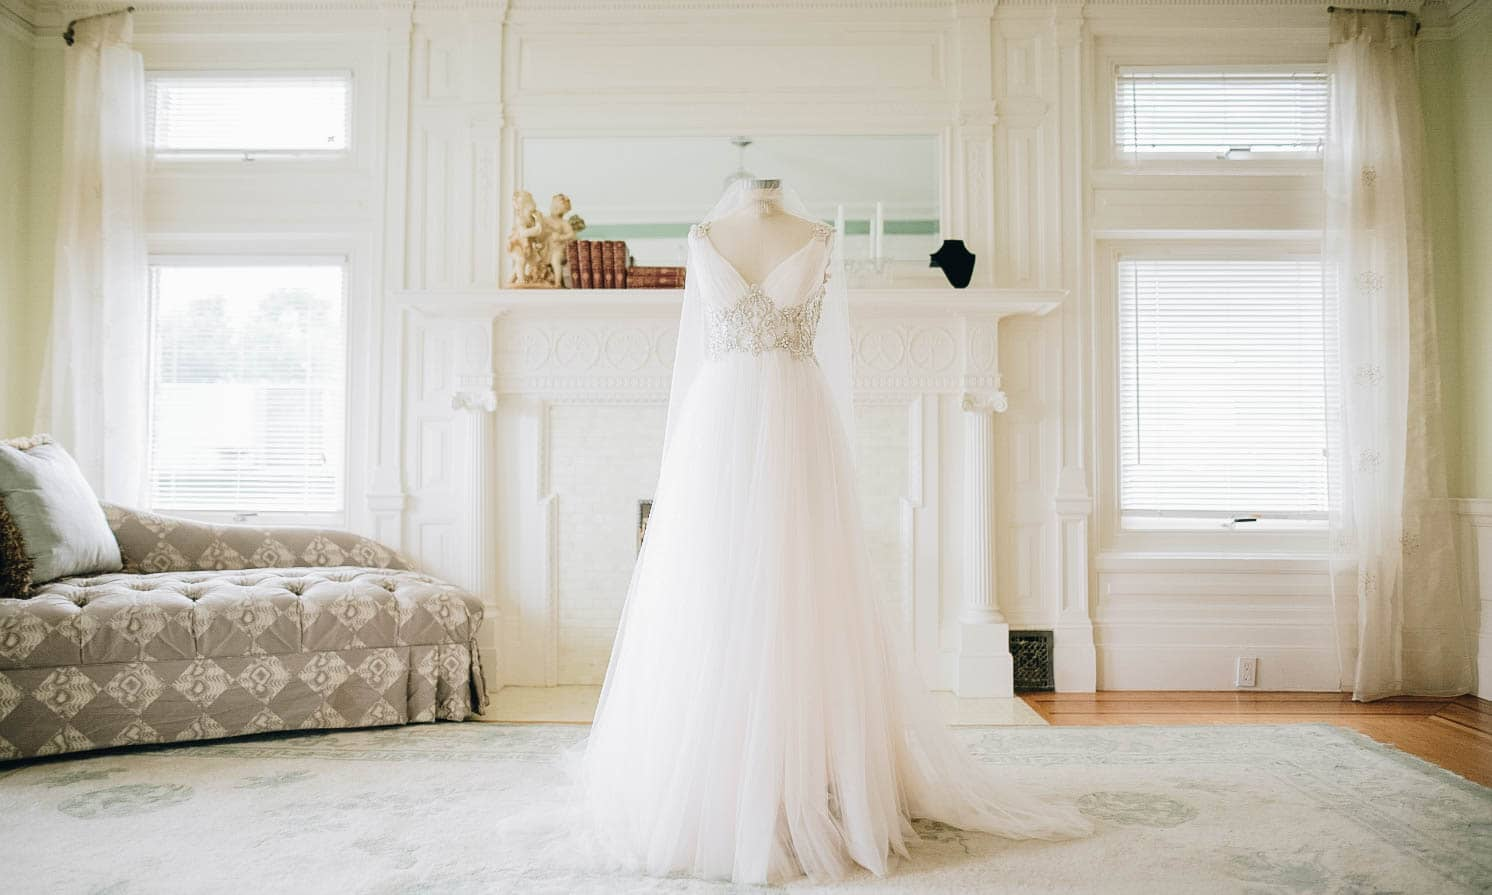 van-dusen-mansion-bridal-2.jpg